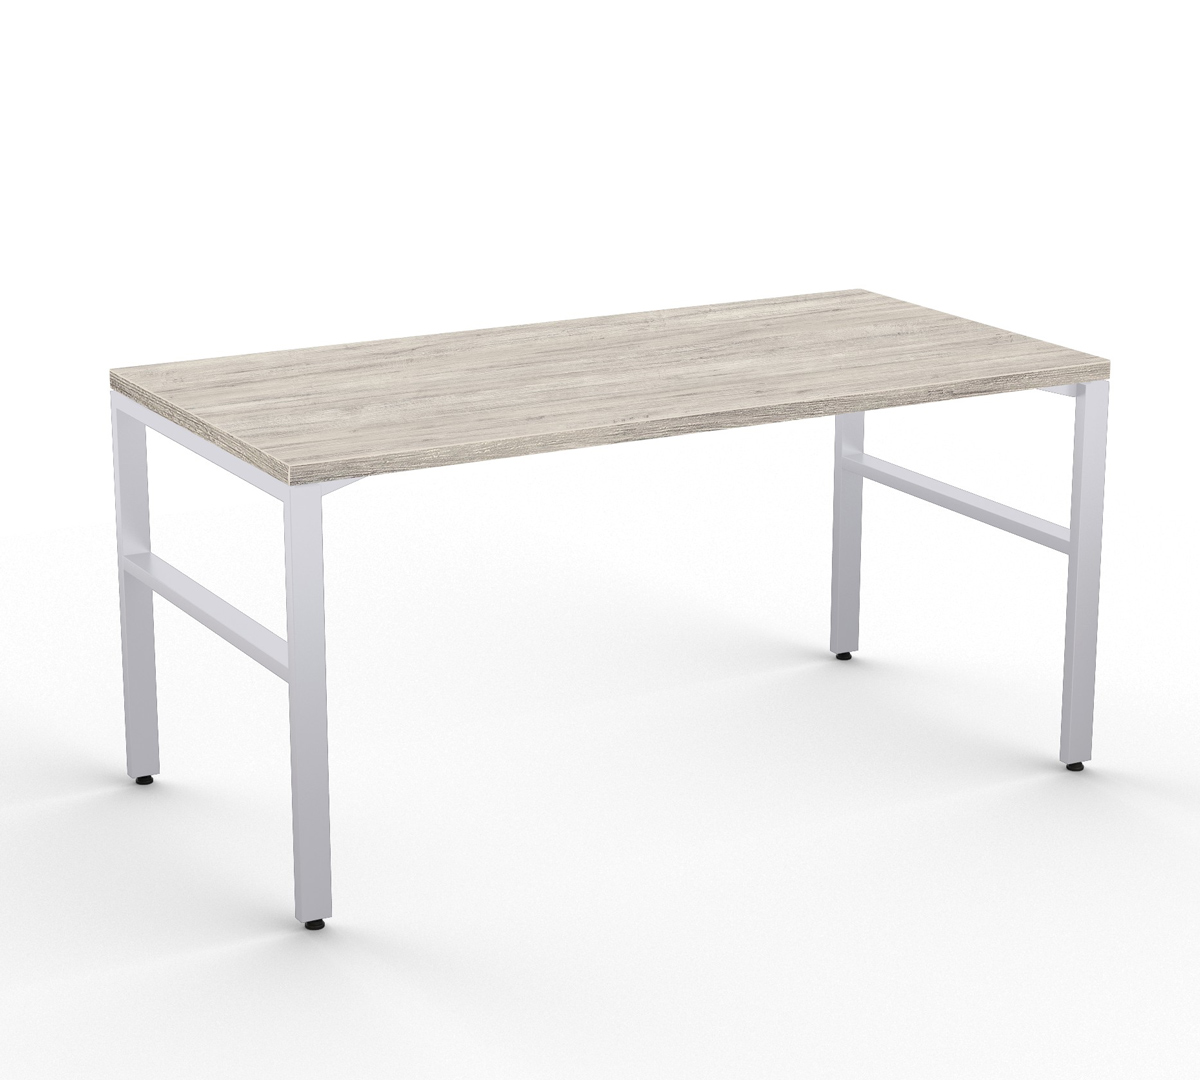 Structure Table Special T Affordable Tables For Office Furniture Industry Tables